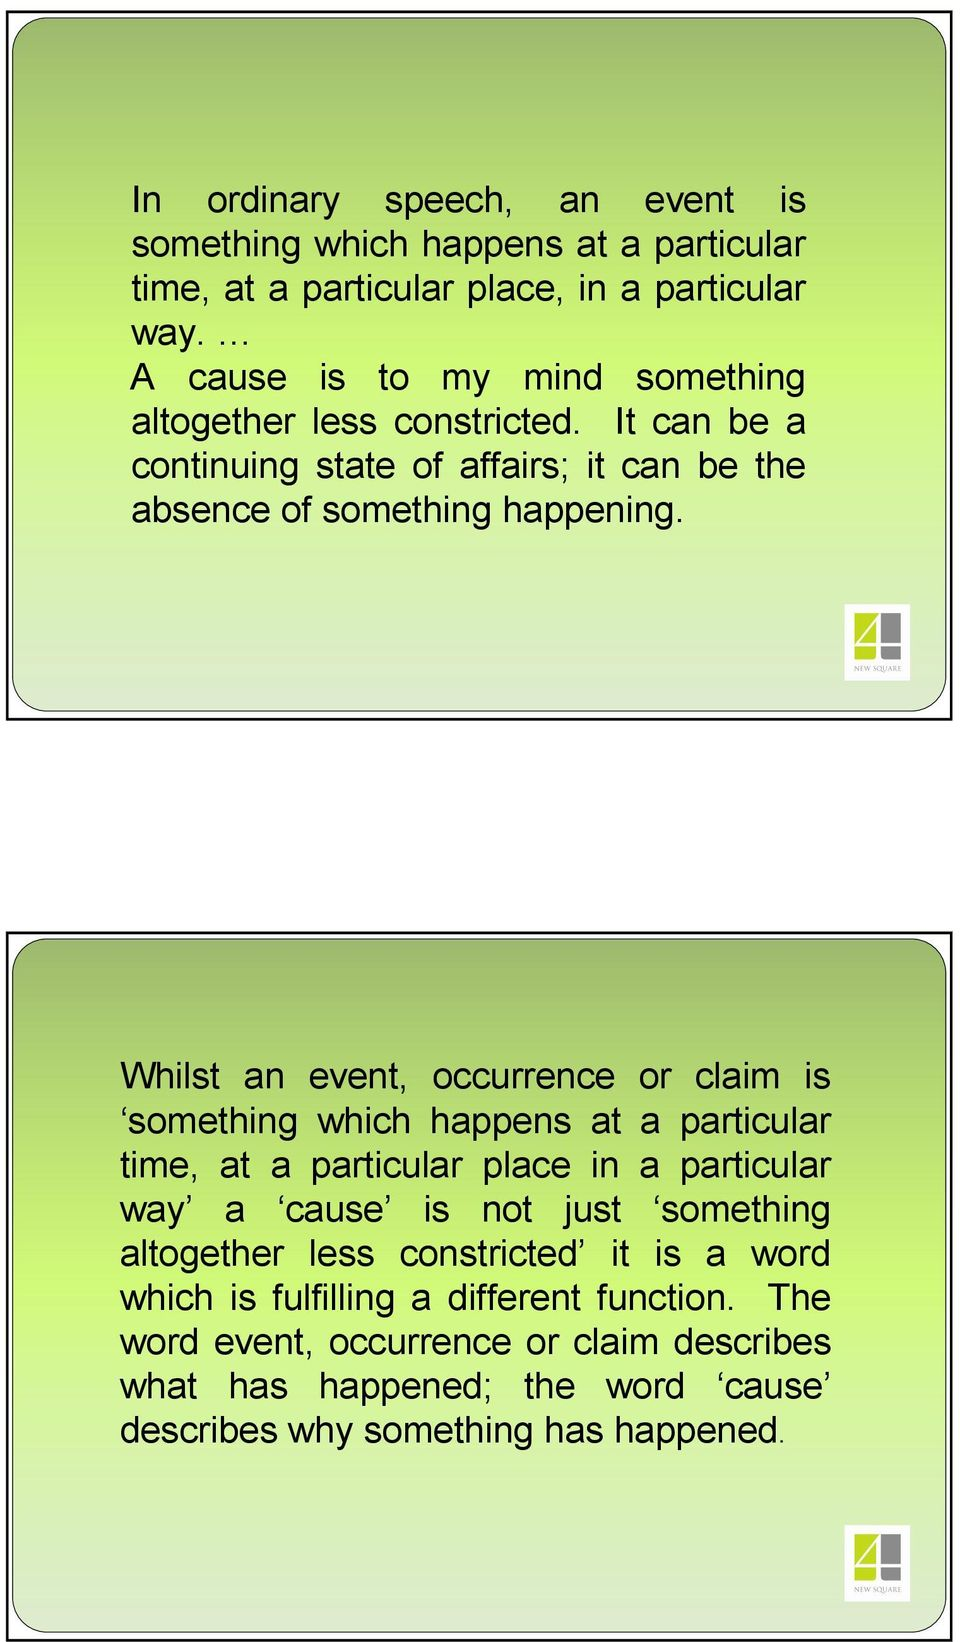 Whilst an event, occurrence or claim is something which happens at a particular time, at a particular place in a particular way a cause is not just